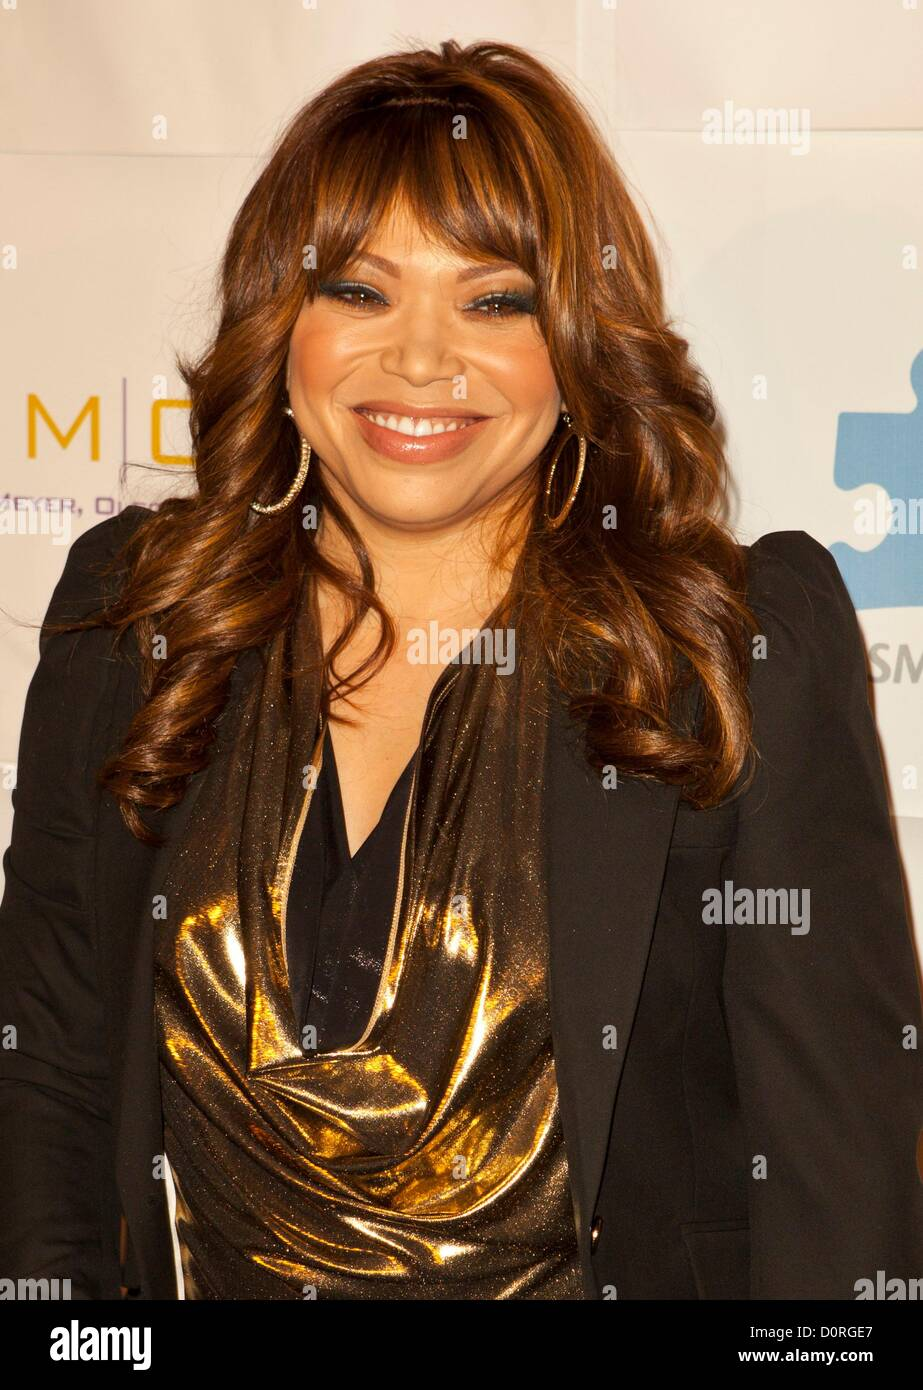 tisha stock photos tisha stock images alamy tisha campbell martin at arrivals for autism speaks blue tie blue jean ball